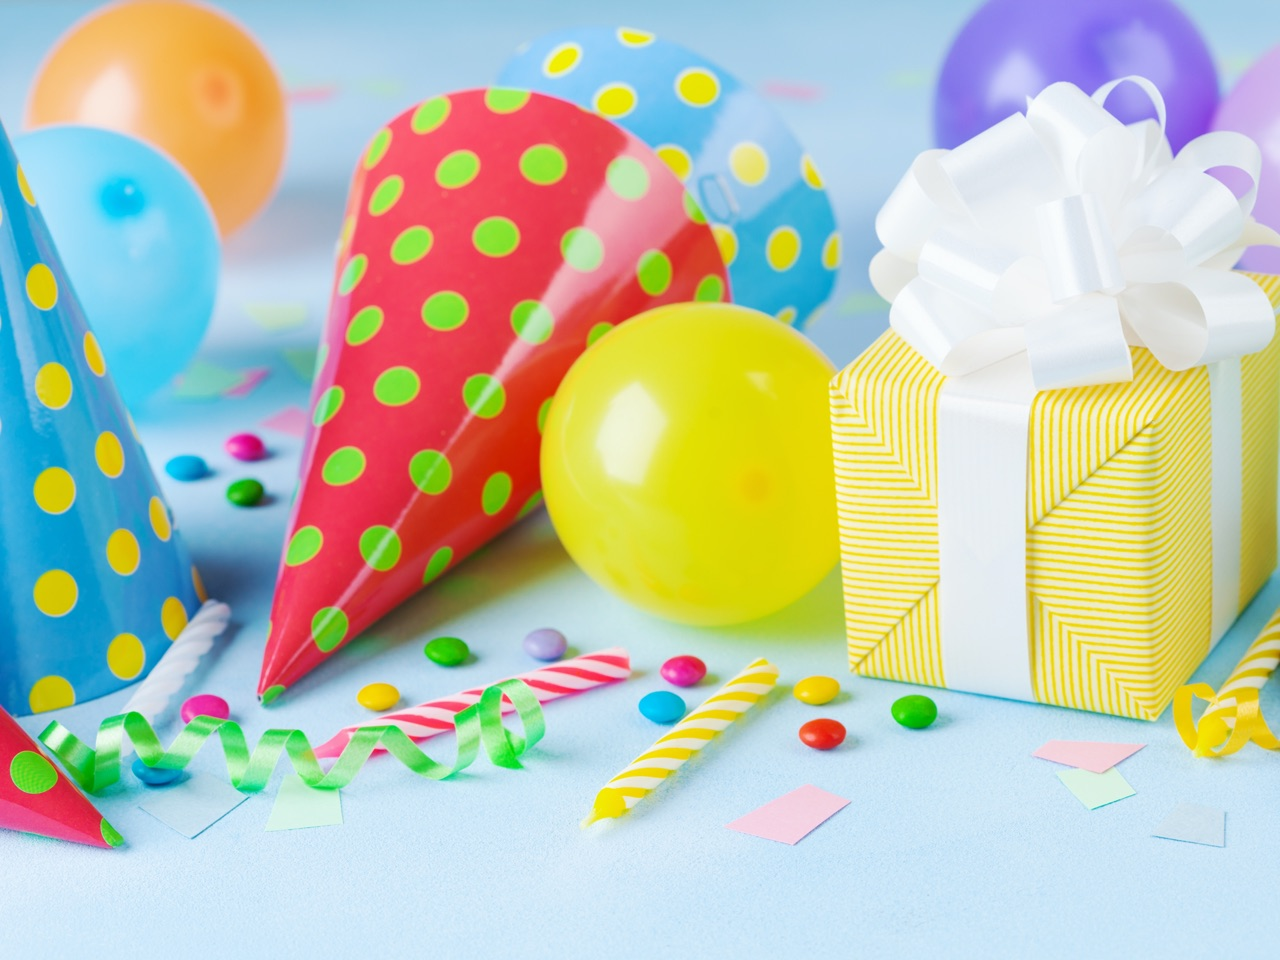 gifts, party supplies, balloons, confetti